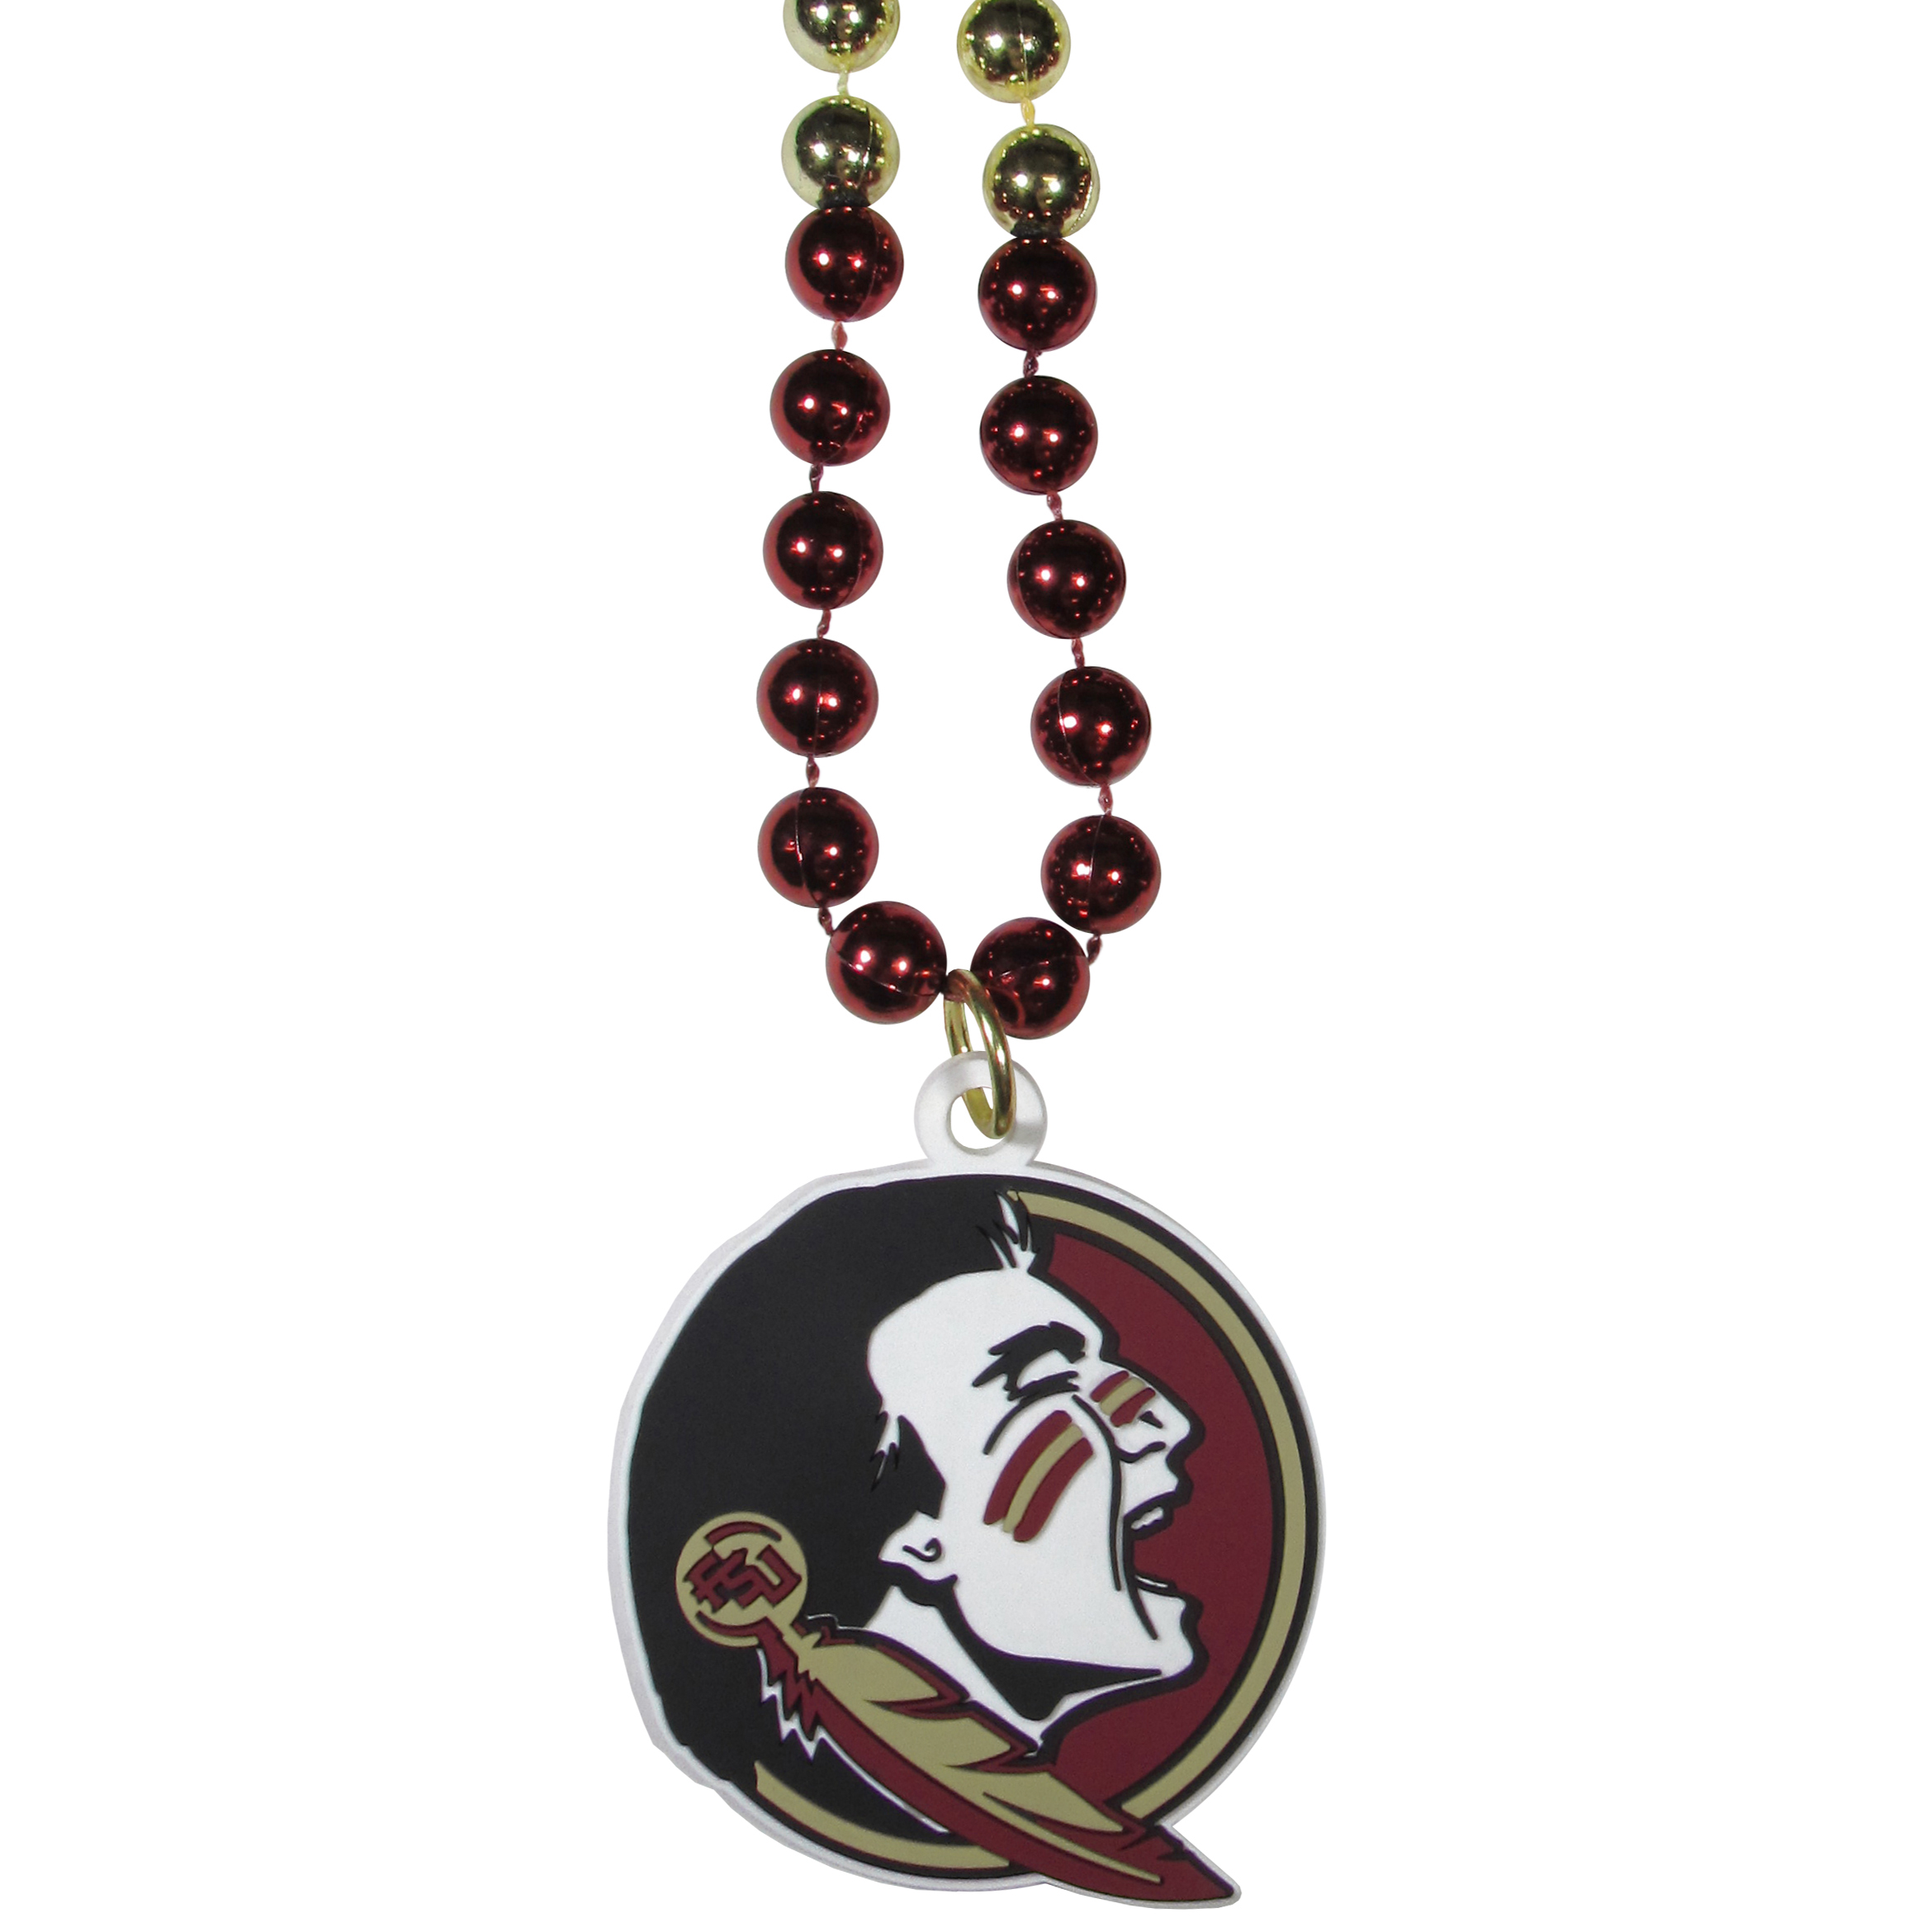 Florida St. Seminoles Mardi Gras Necklace - Get the party started with this Mardi Gras inspired bead necklace. The flashy beads have a shiny finish and come in bright team colors strung together on a 36 inch string so you can make a big statement on game day! The beads come with an extra large flexible team logo that is a full 3 inches at its widest point. This trendy and bold necklace screams out your Florida St. Seminoles pride and is a must have at game time!